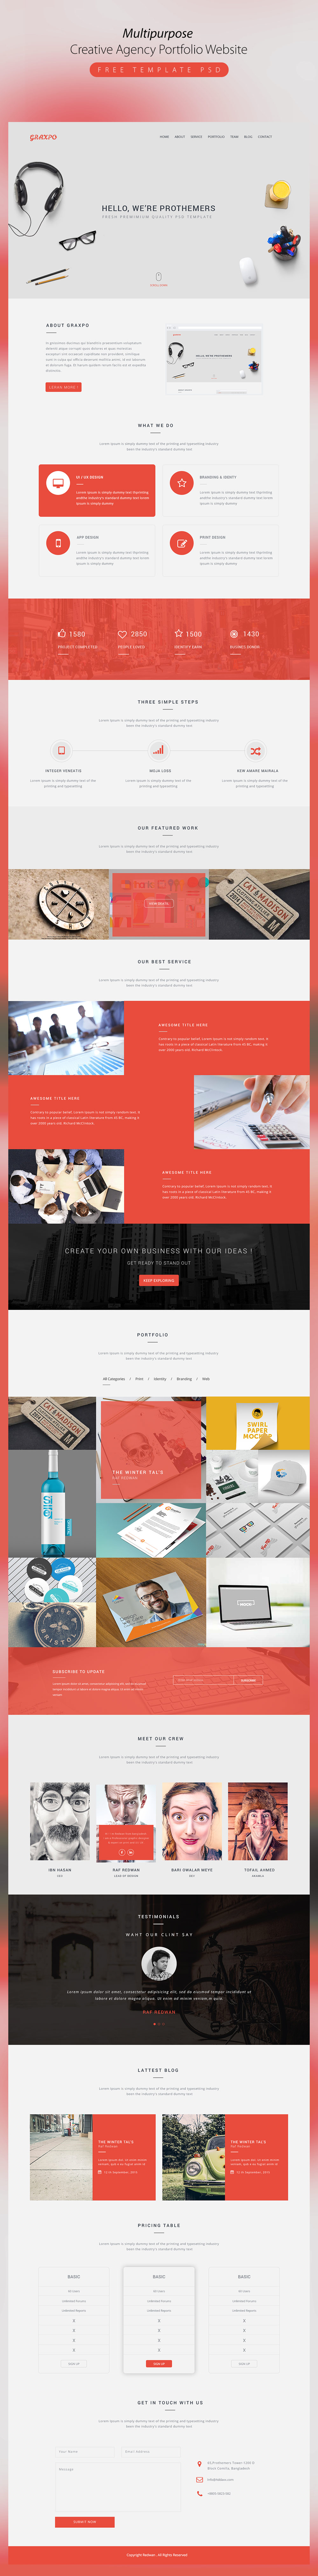 High Quality 50+ Free Corporate And Business Web Templates PSD Download Download PSD